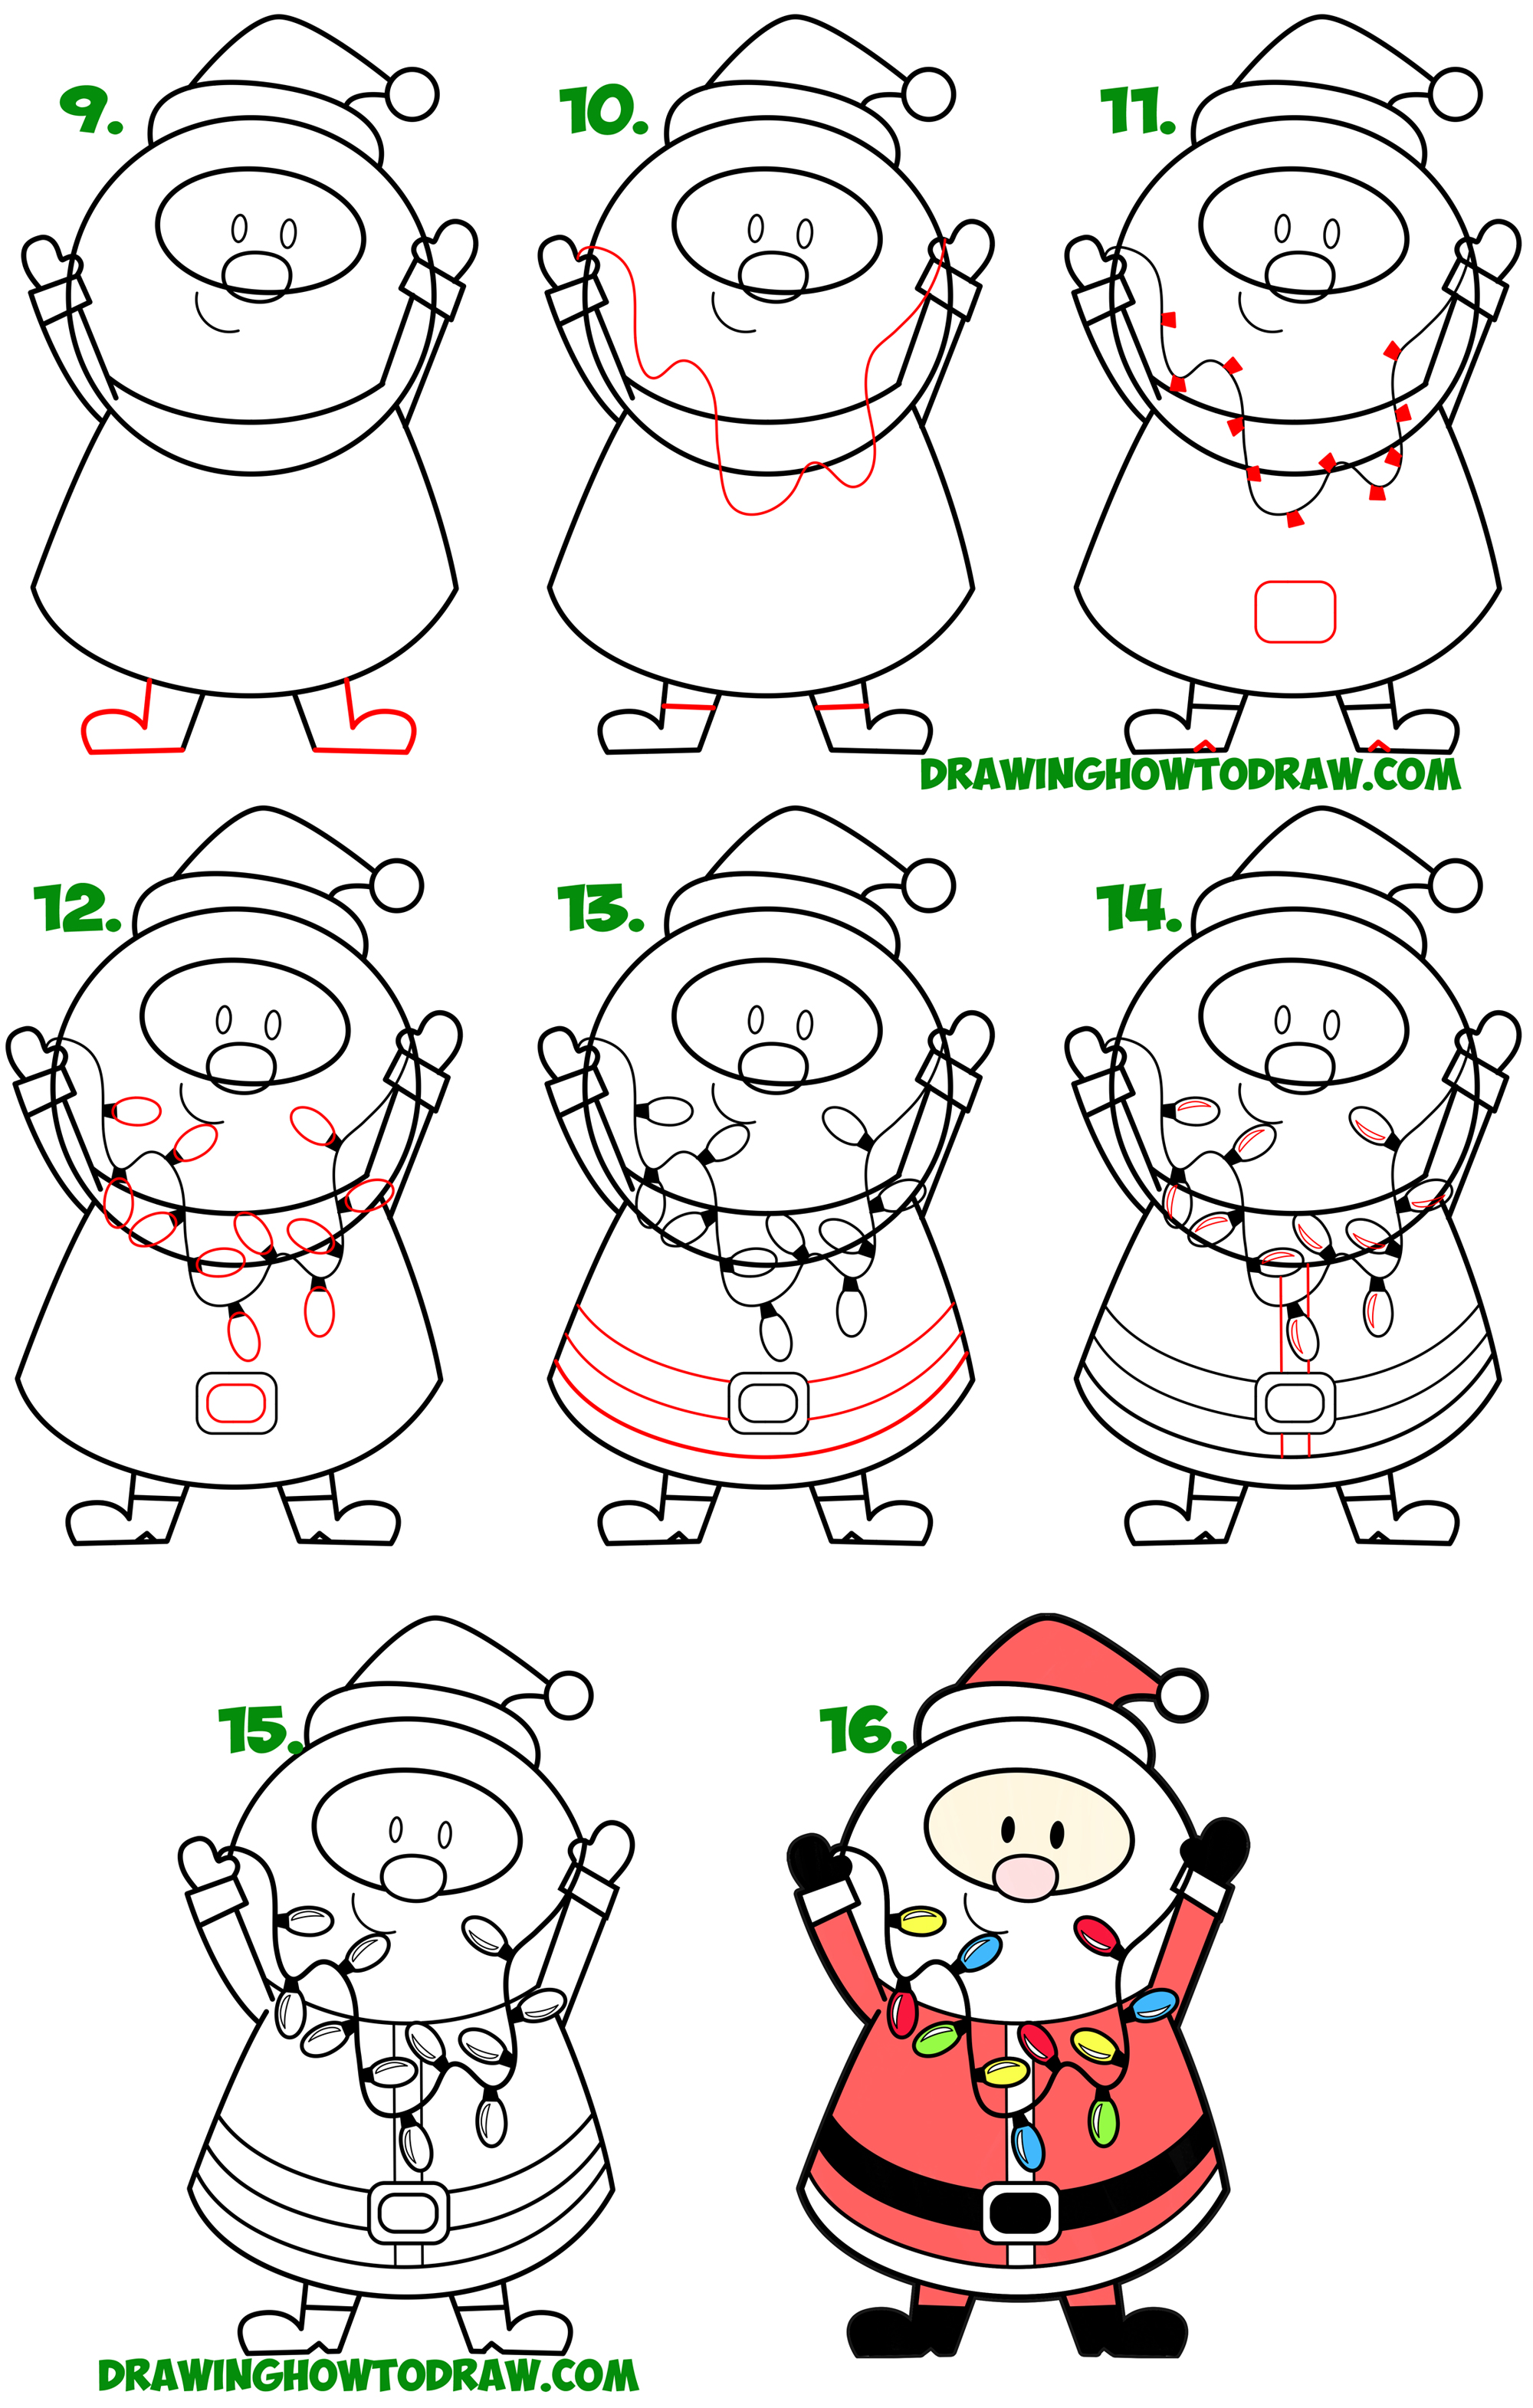 How To Draw Santa Claus Holding Christmas Lights Easy Step By Step